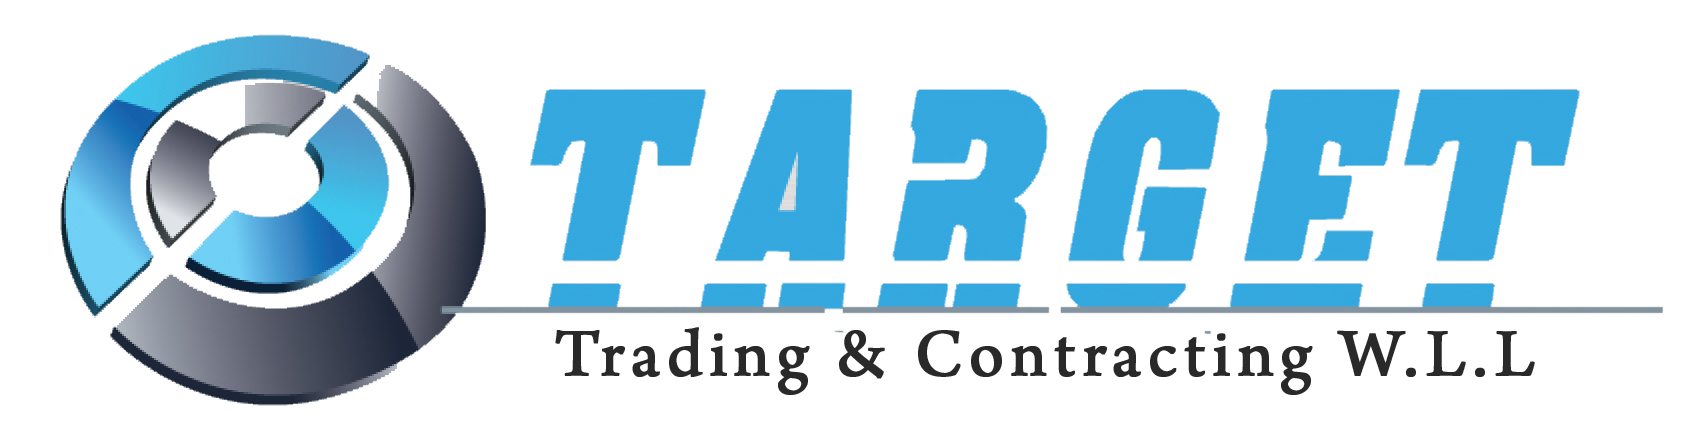 Target Trading - Stainless steel suppliers in qatar - aluminium supplier